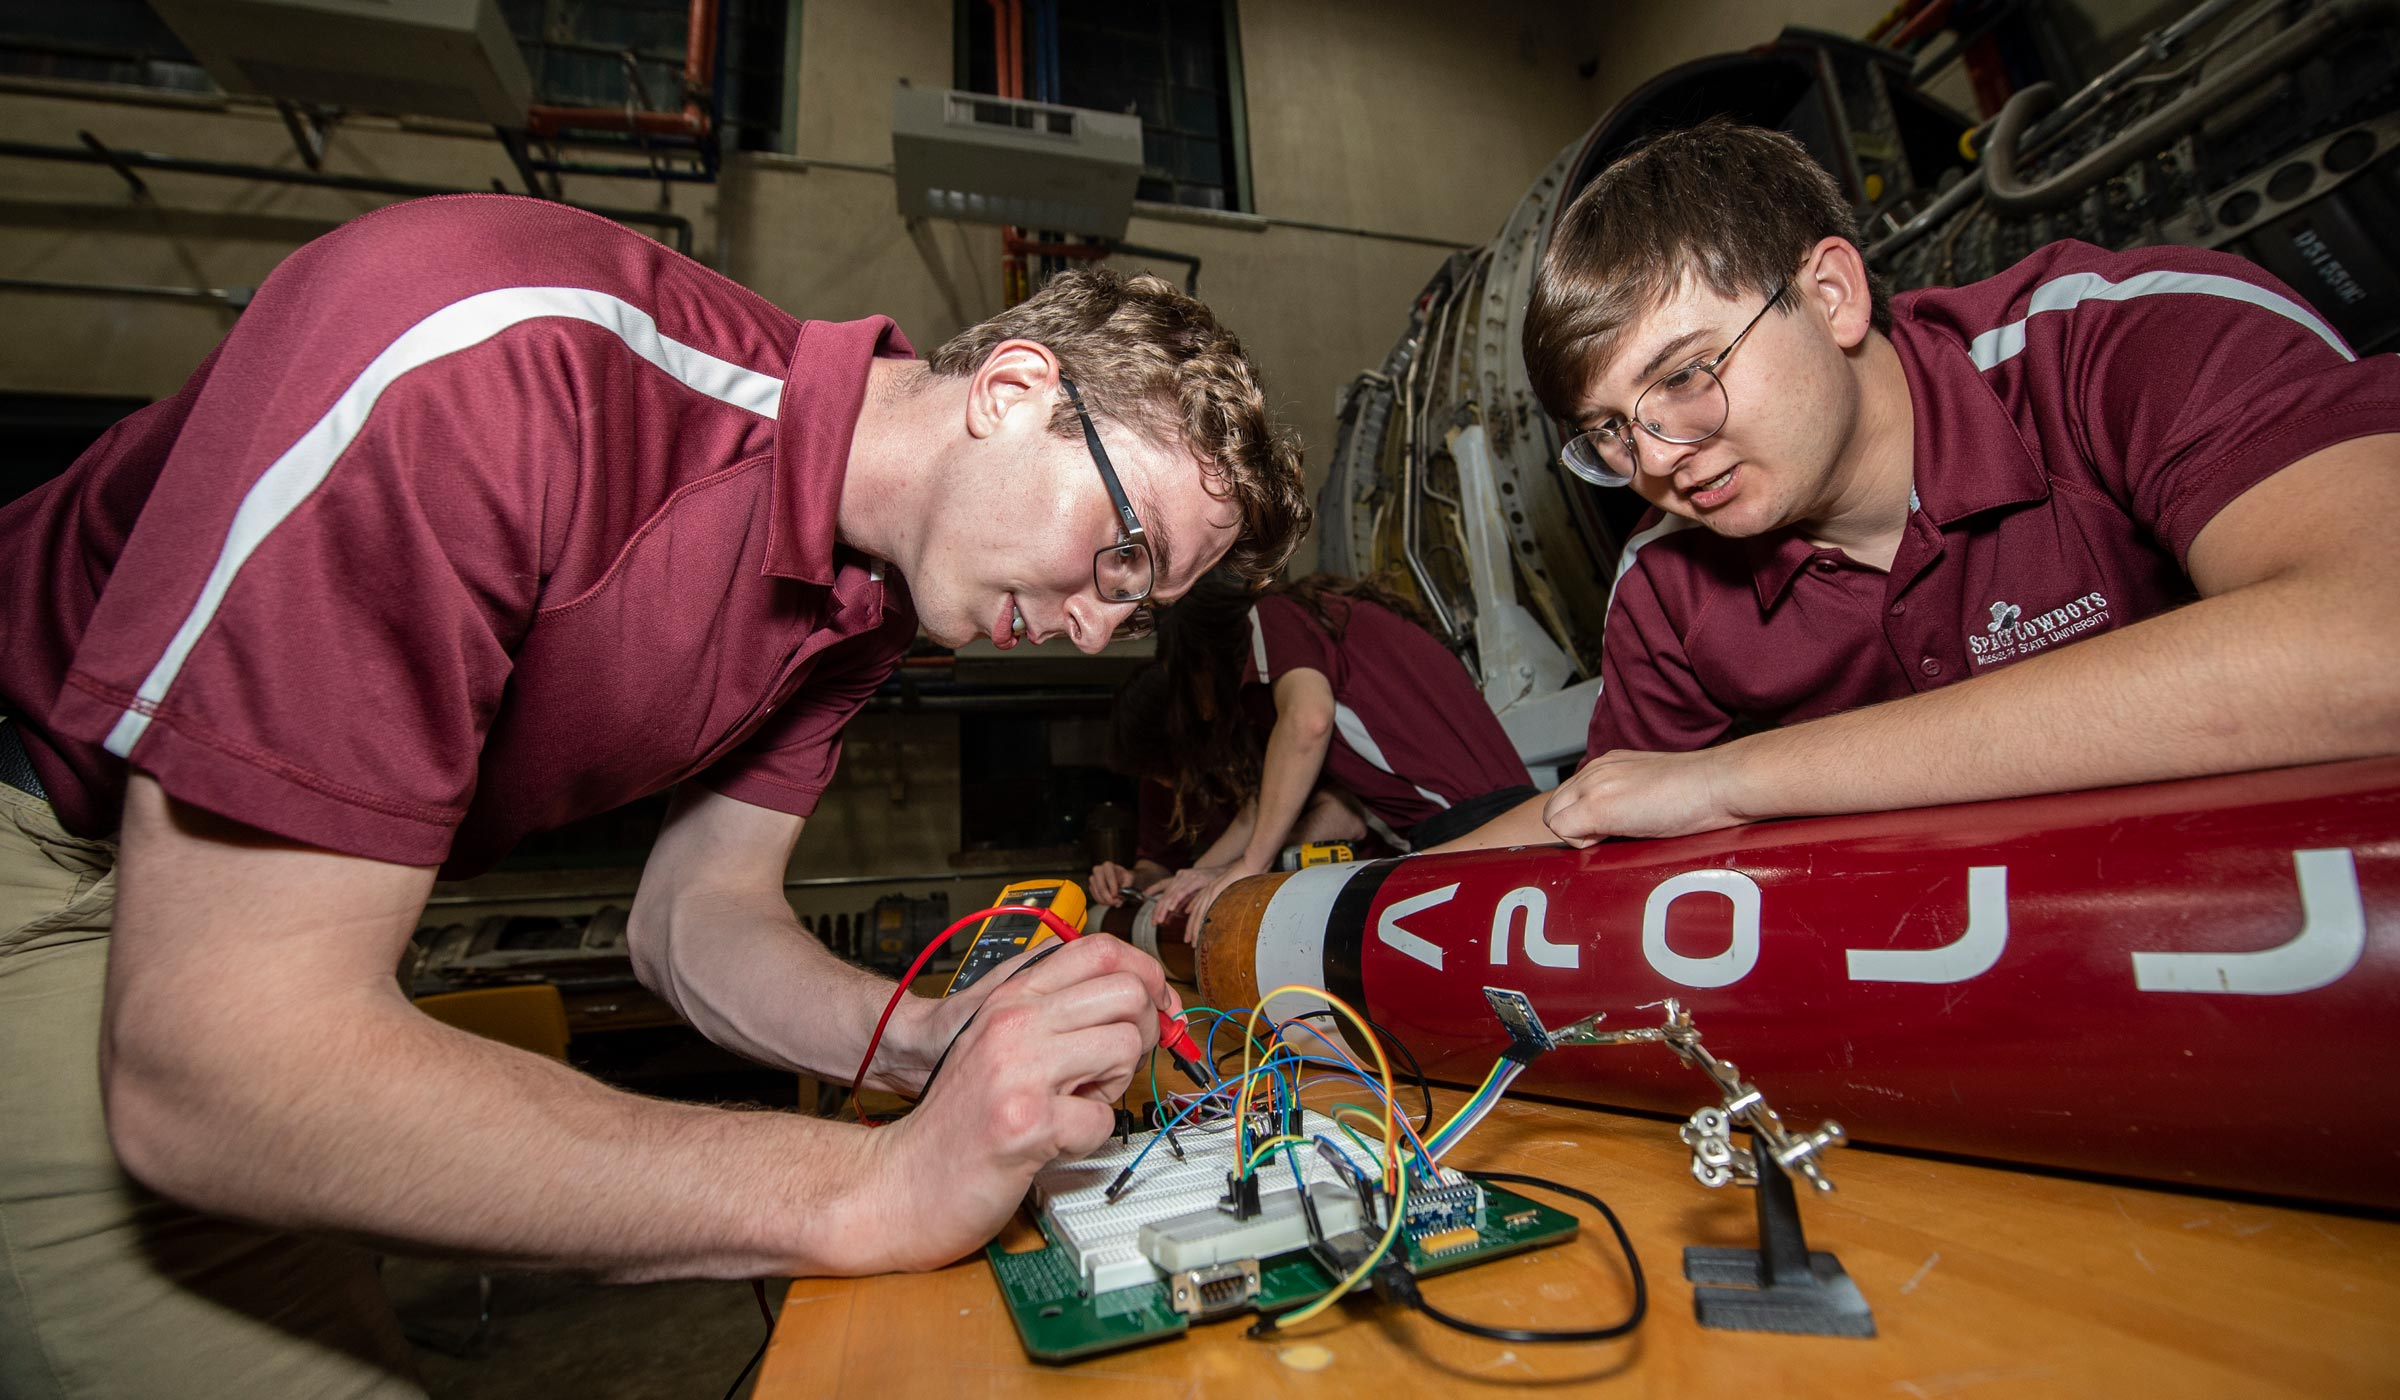 Spencer Lampkin (sl1611) and Chase Wornex (cww209) work on a rocket during a Space cowboys meeting.